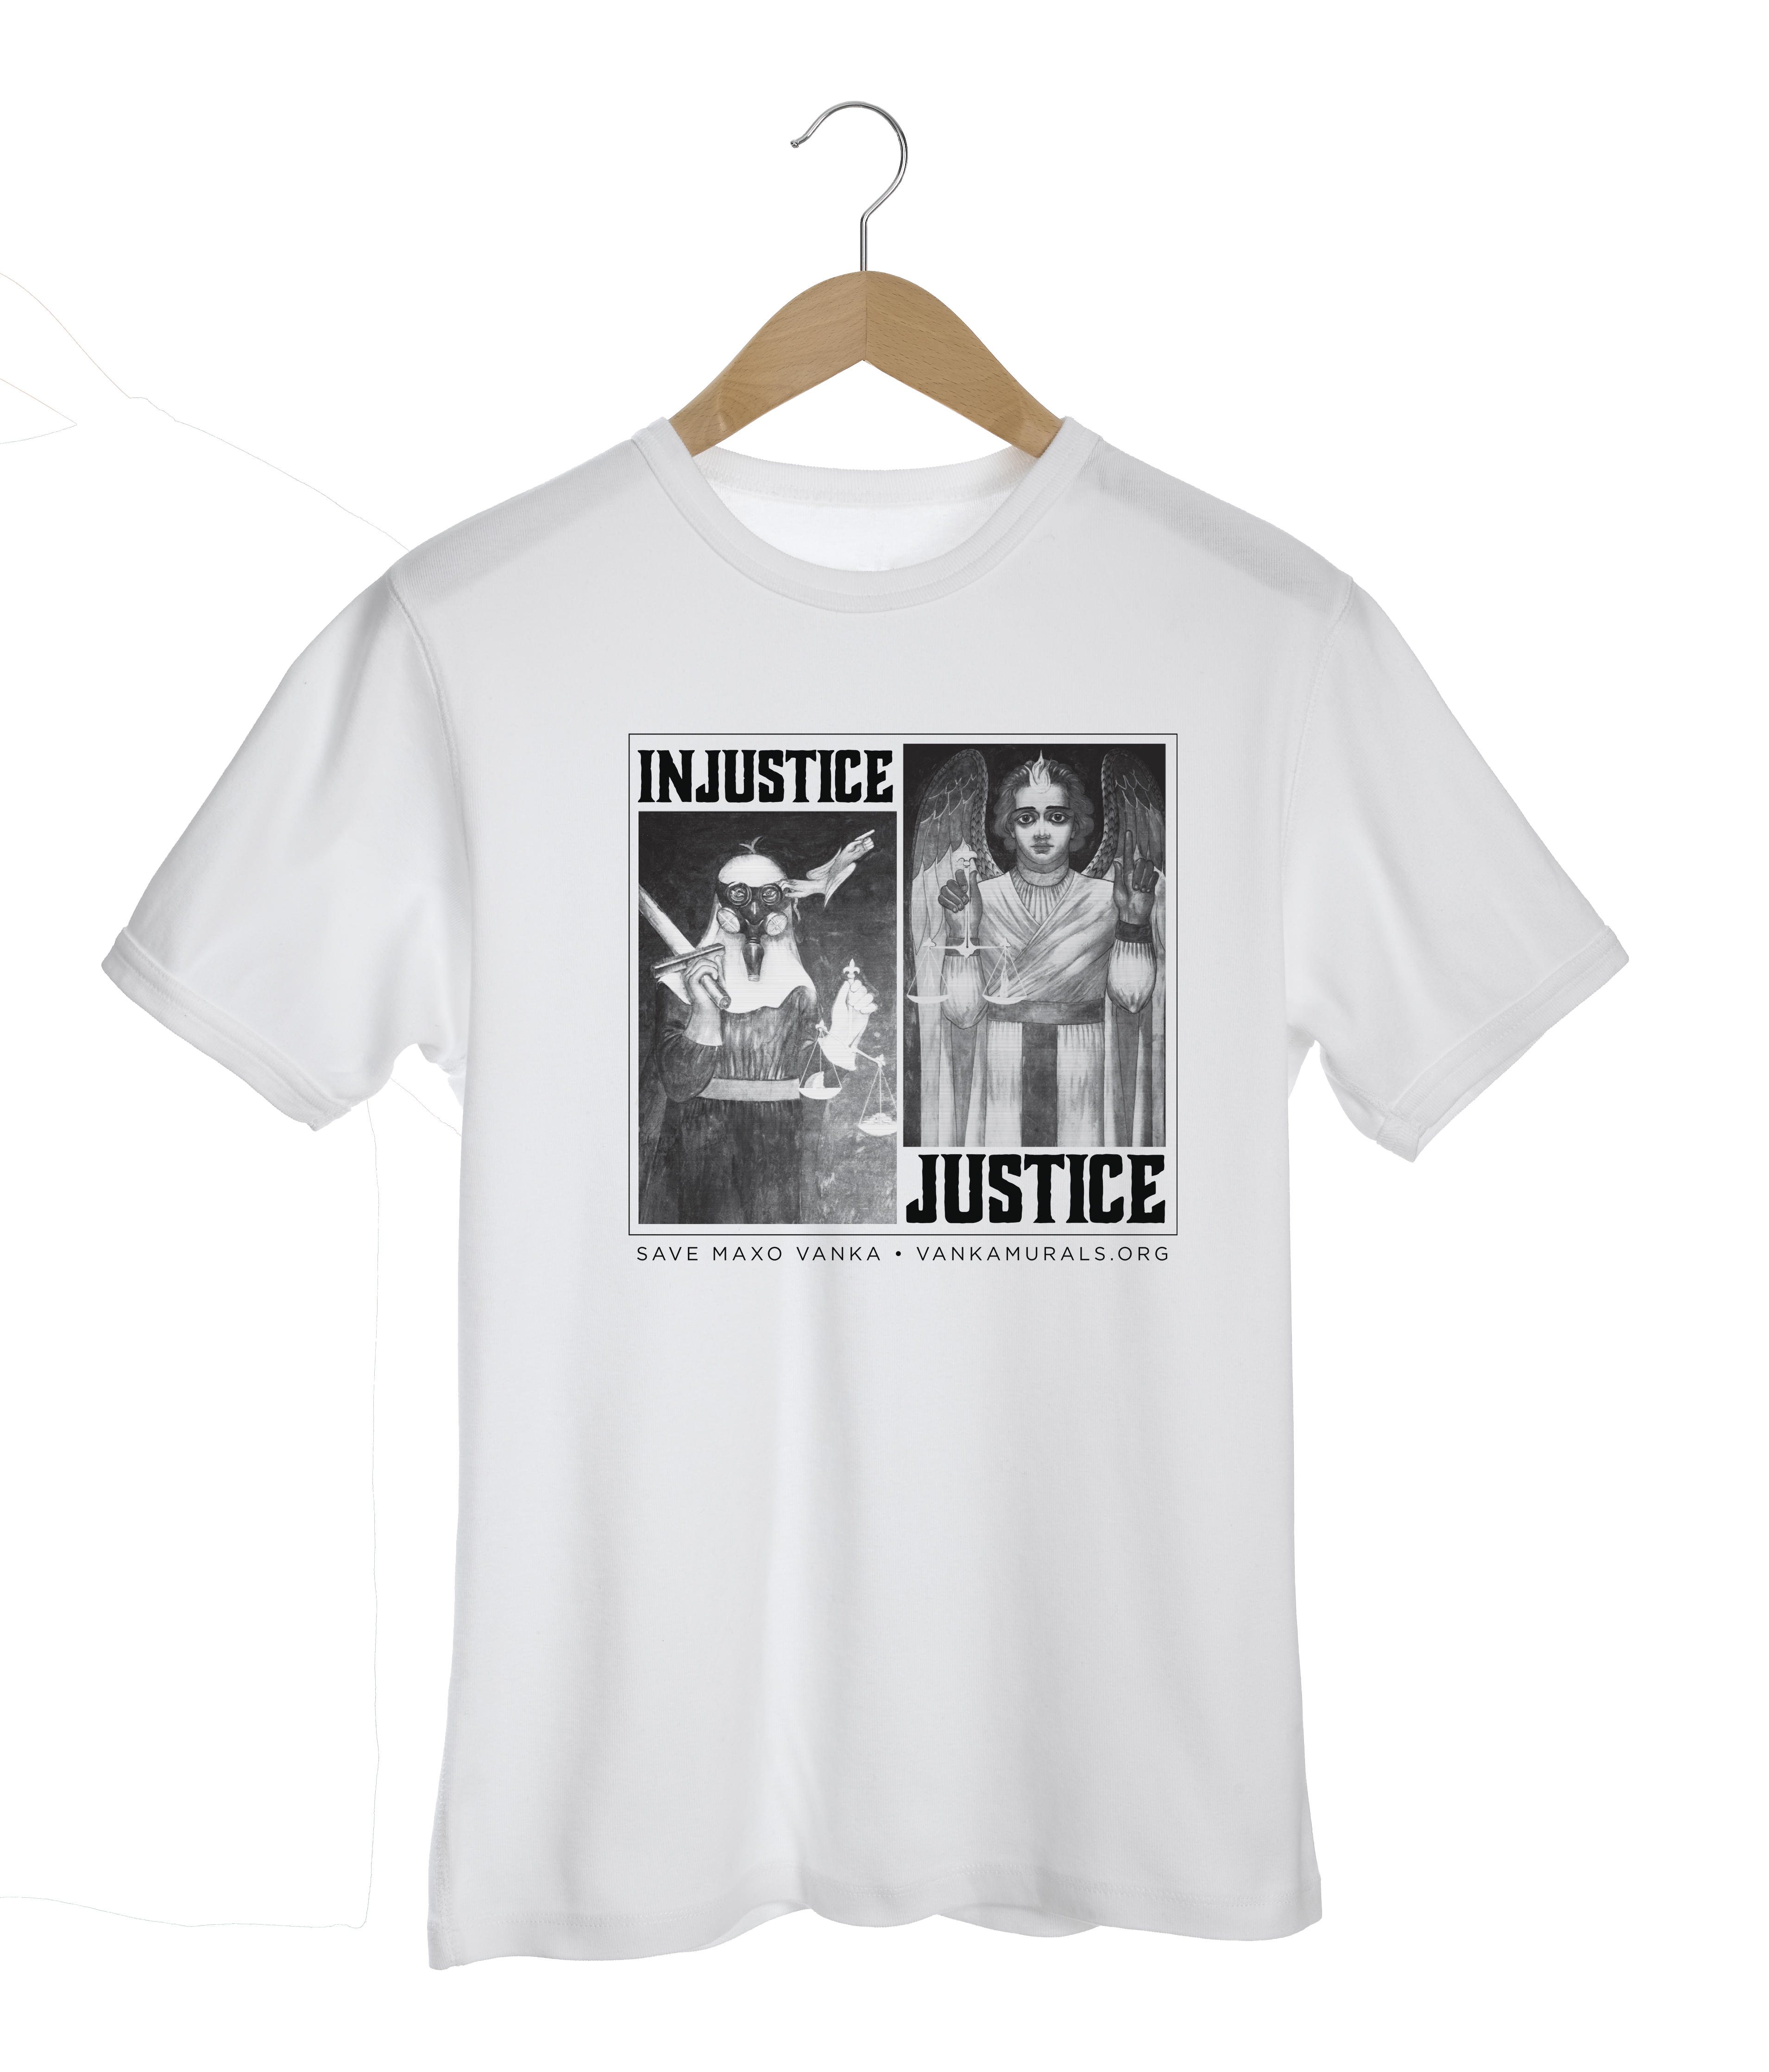 Justice/Injustice T-shirt